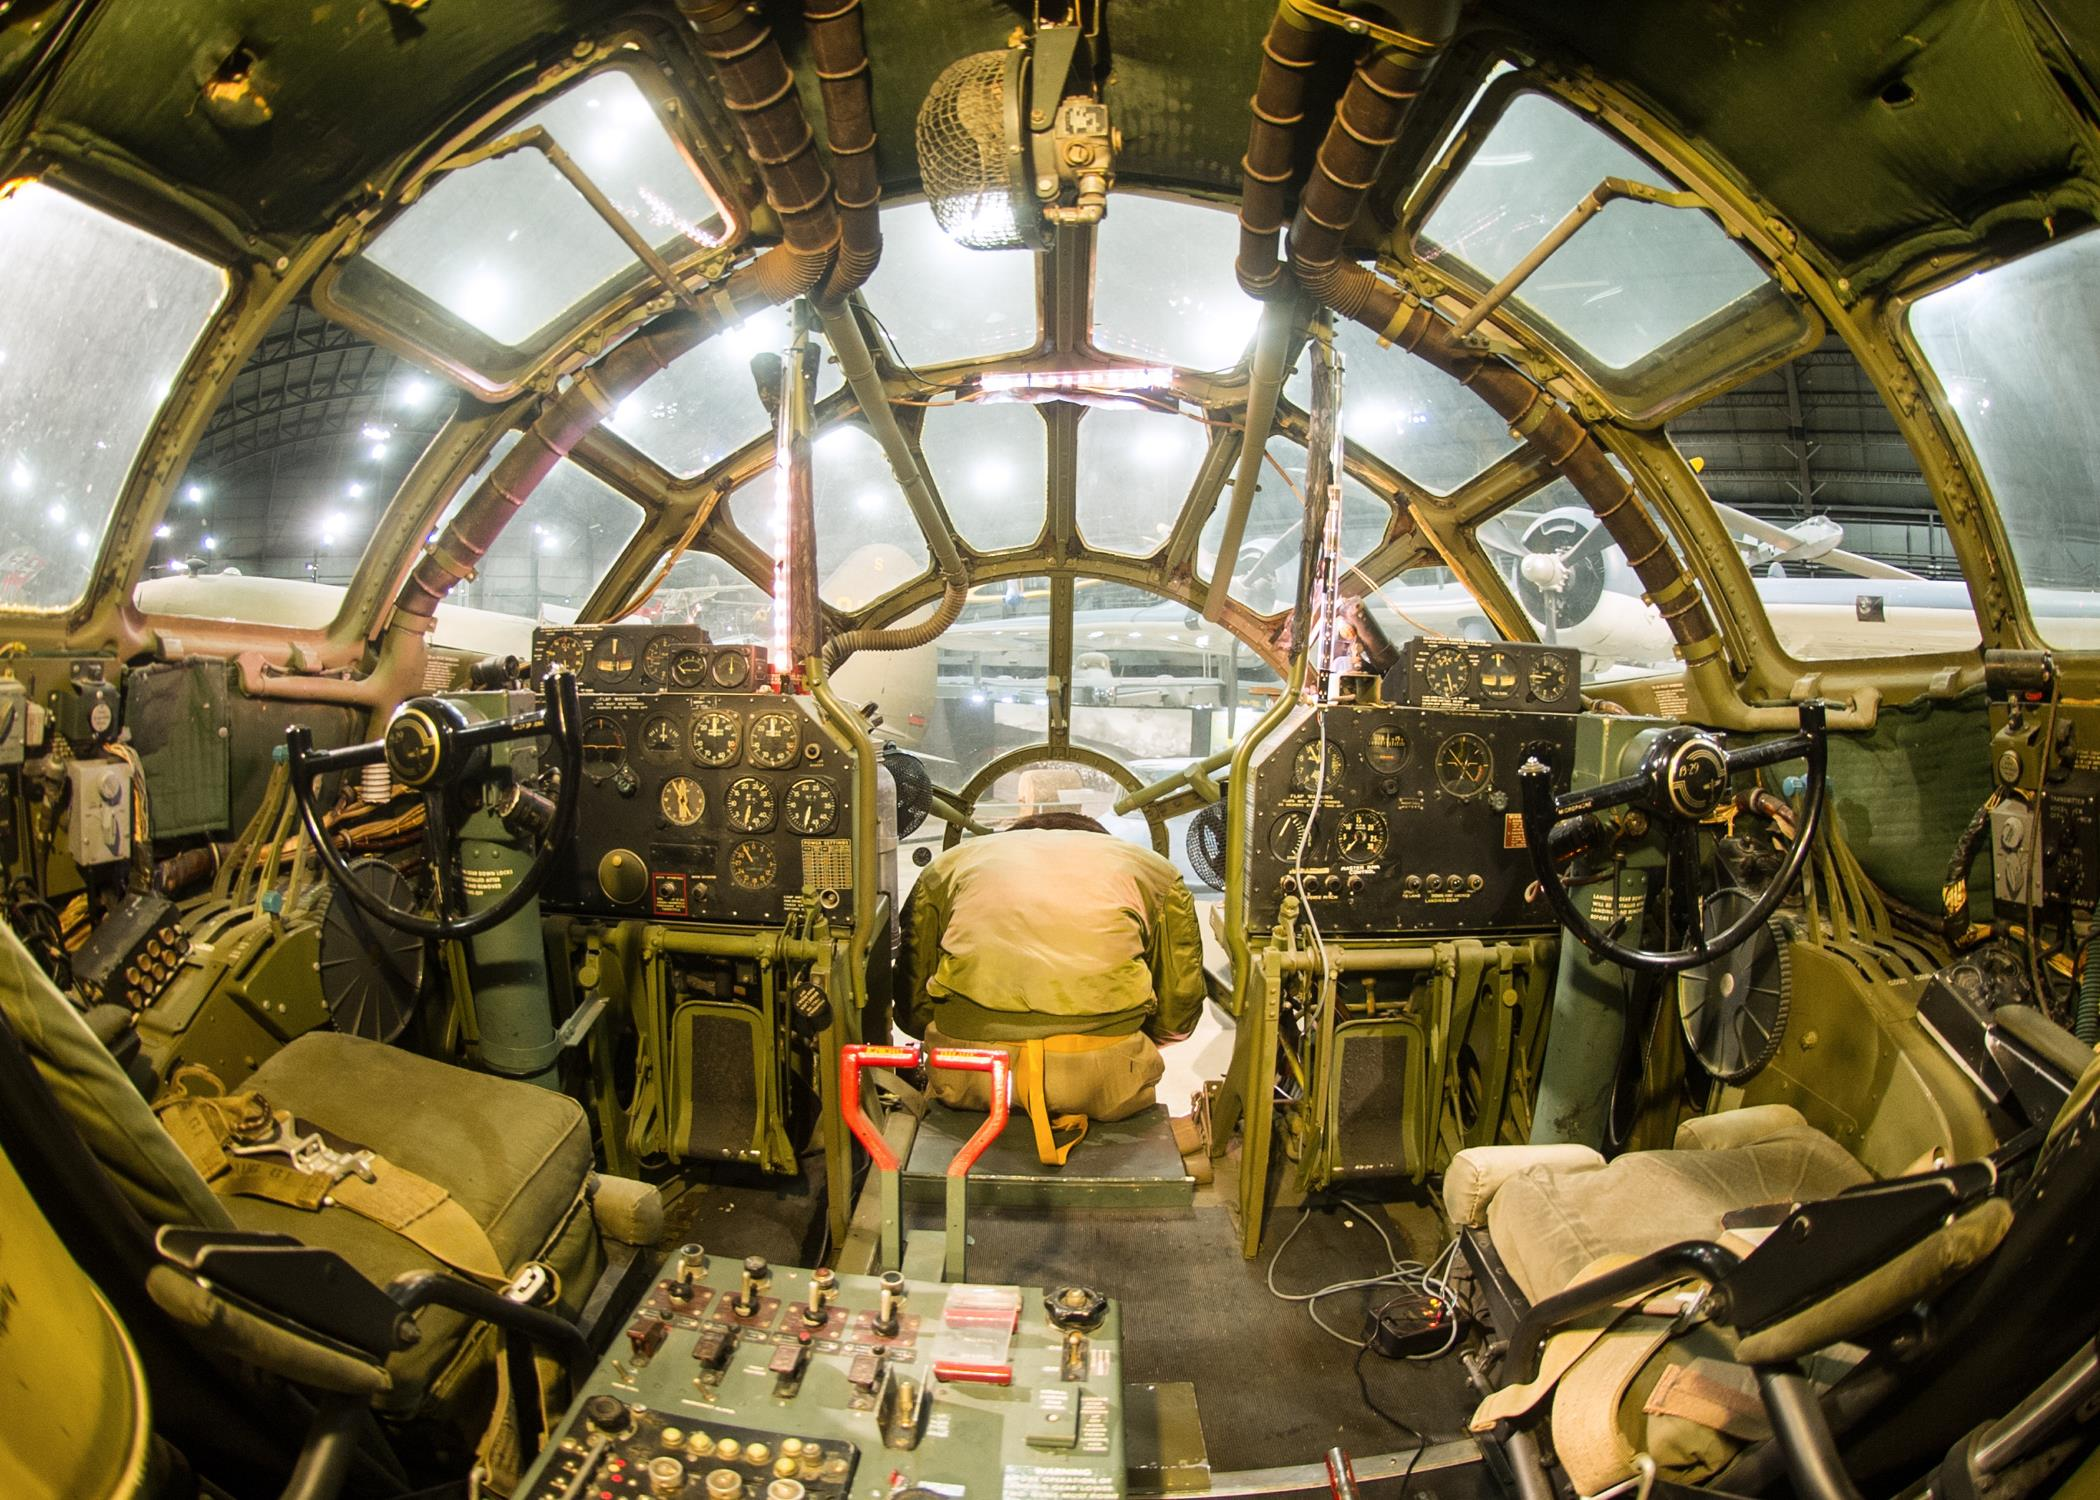 B 29 Inside Boeing B-29 Superfortr...